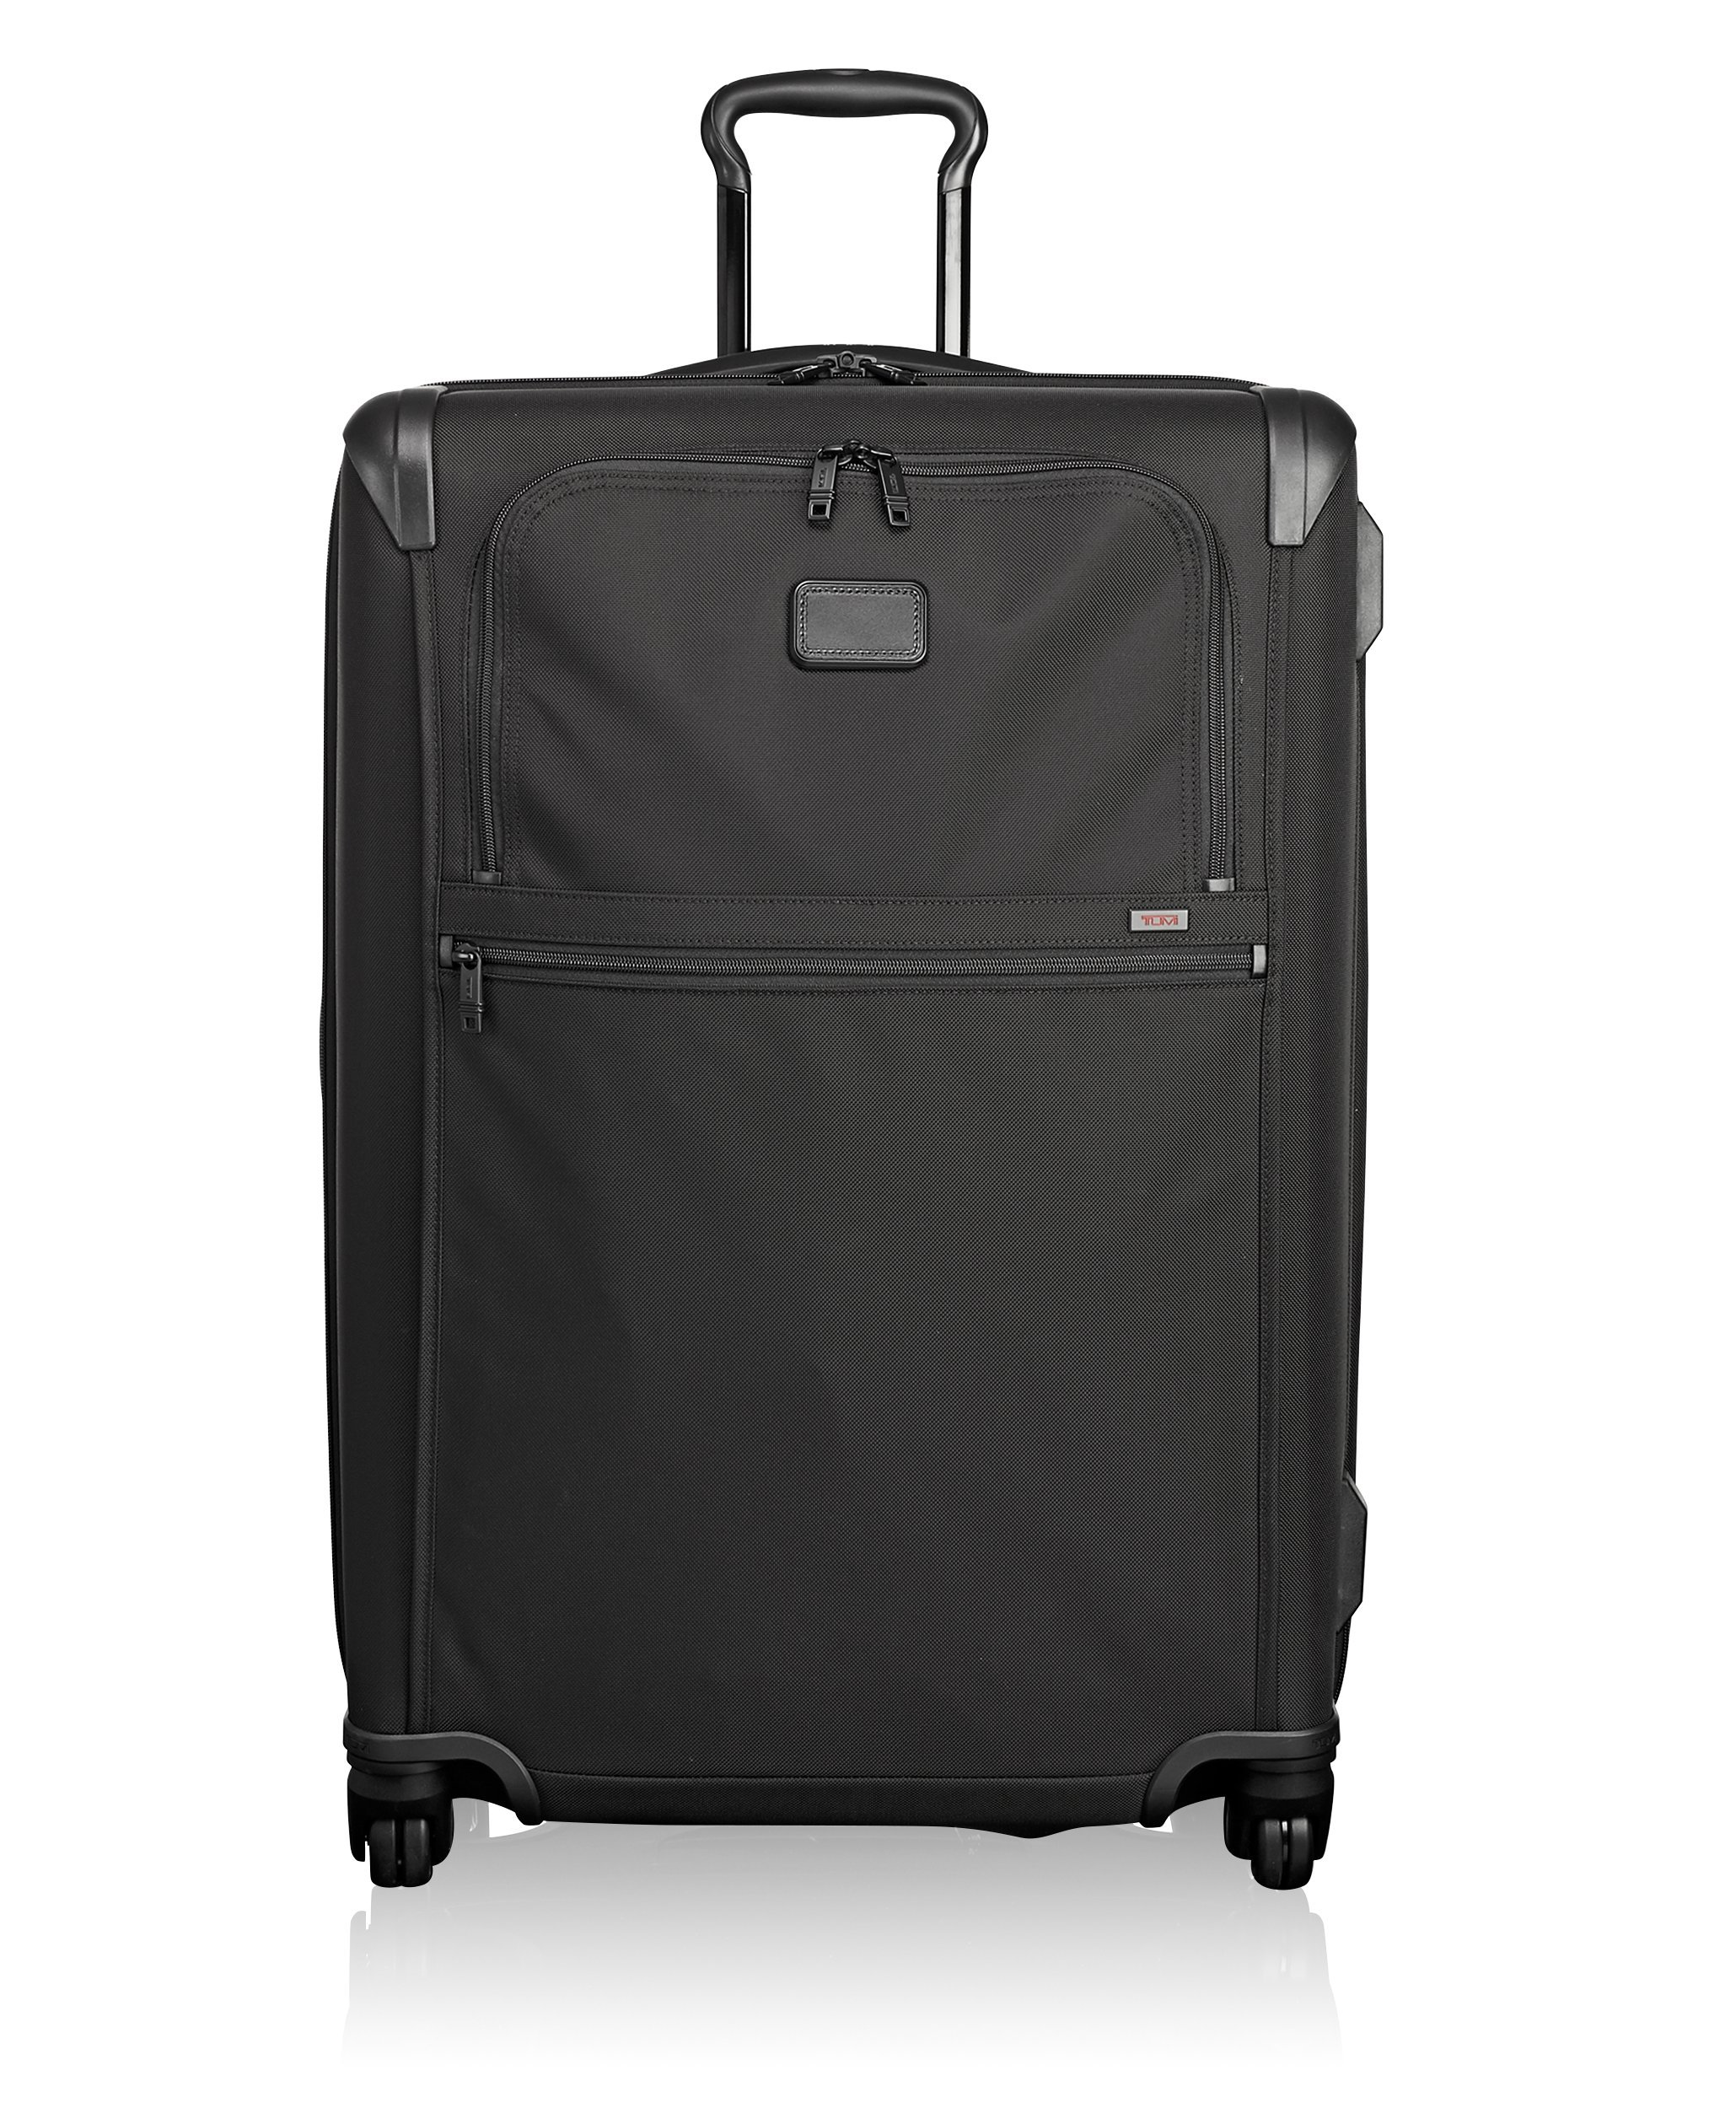 Tumi Alpha 2 Medium Trip Exp 4 Wheel Packing Case, Black, One Size by Tumi